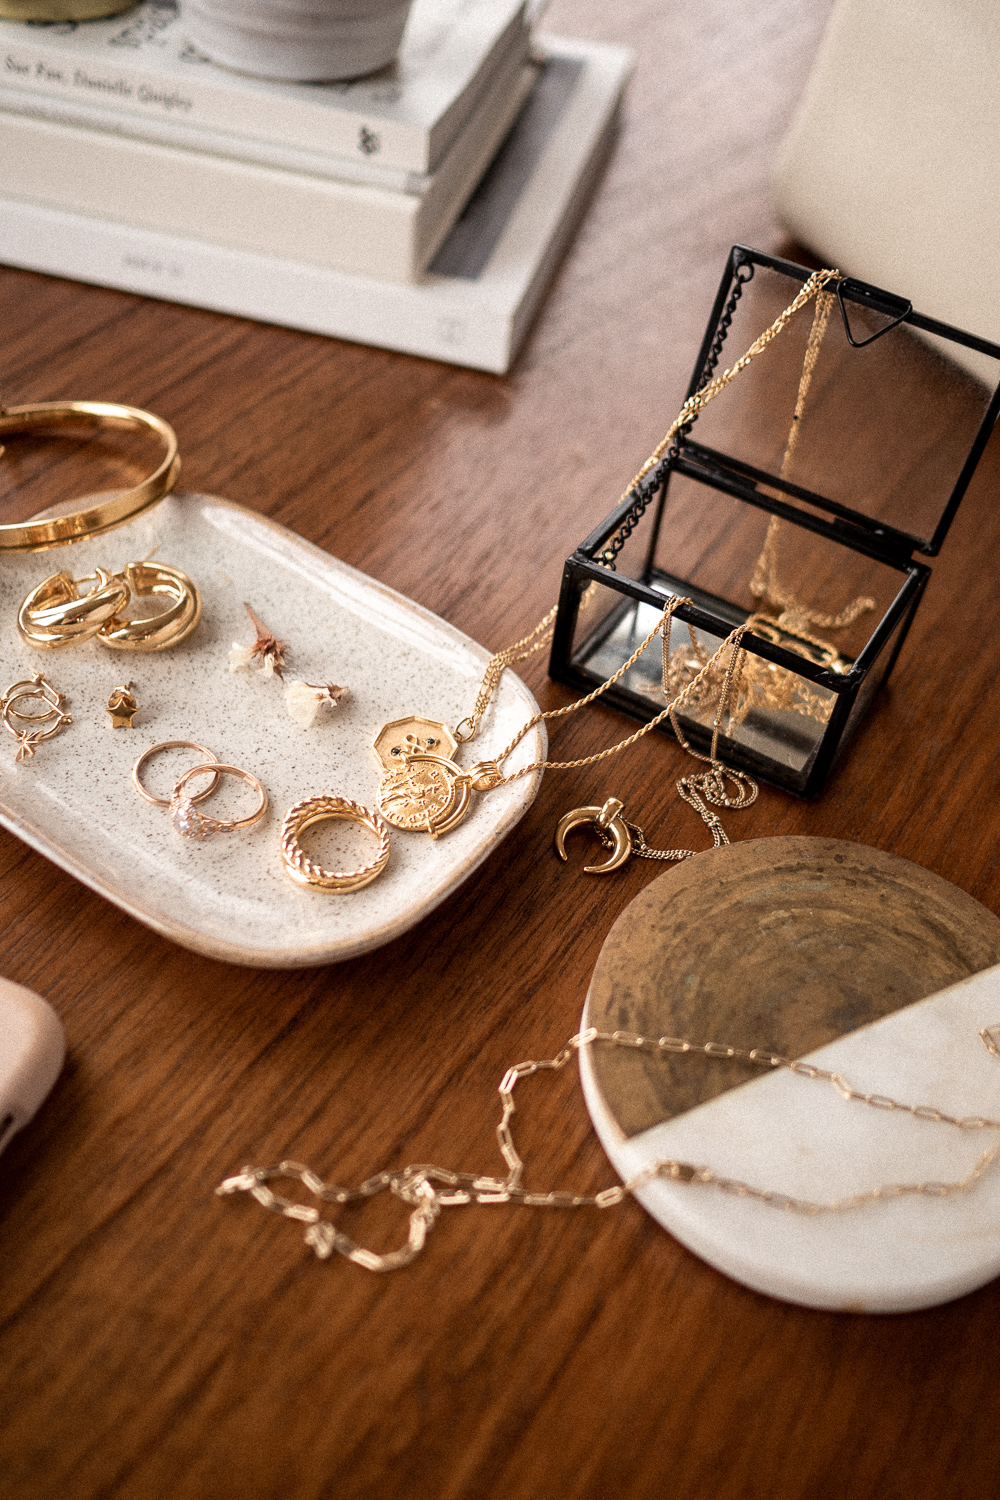 Gold necklaces, gold rings, gold earrings, and gold bracelets all laid out on display in my capsule jewelry collection